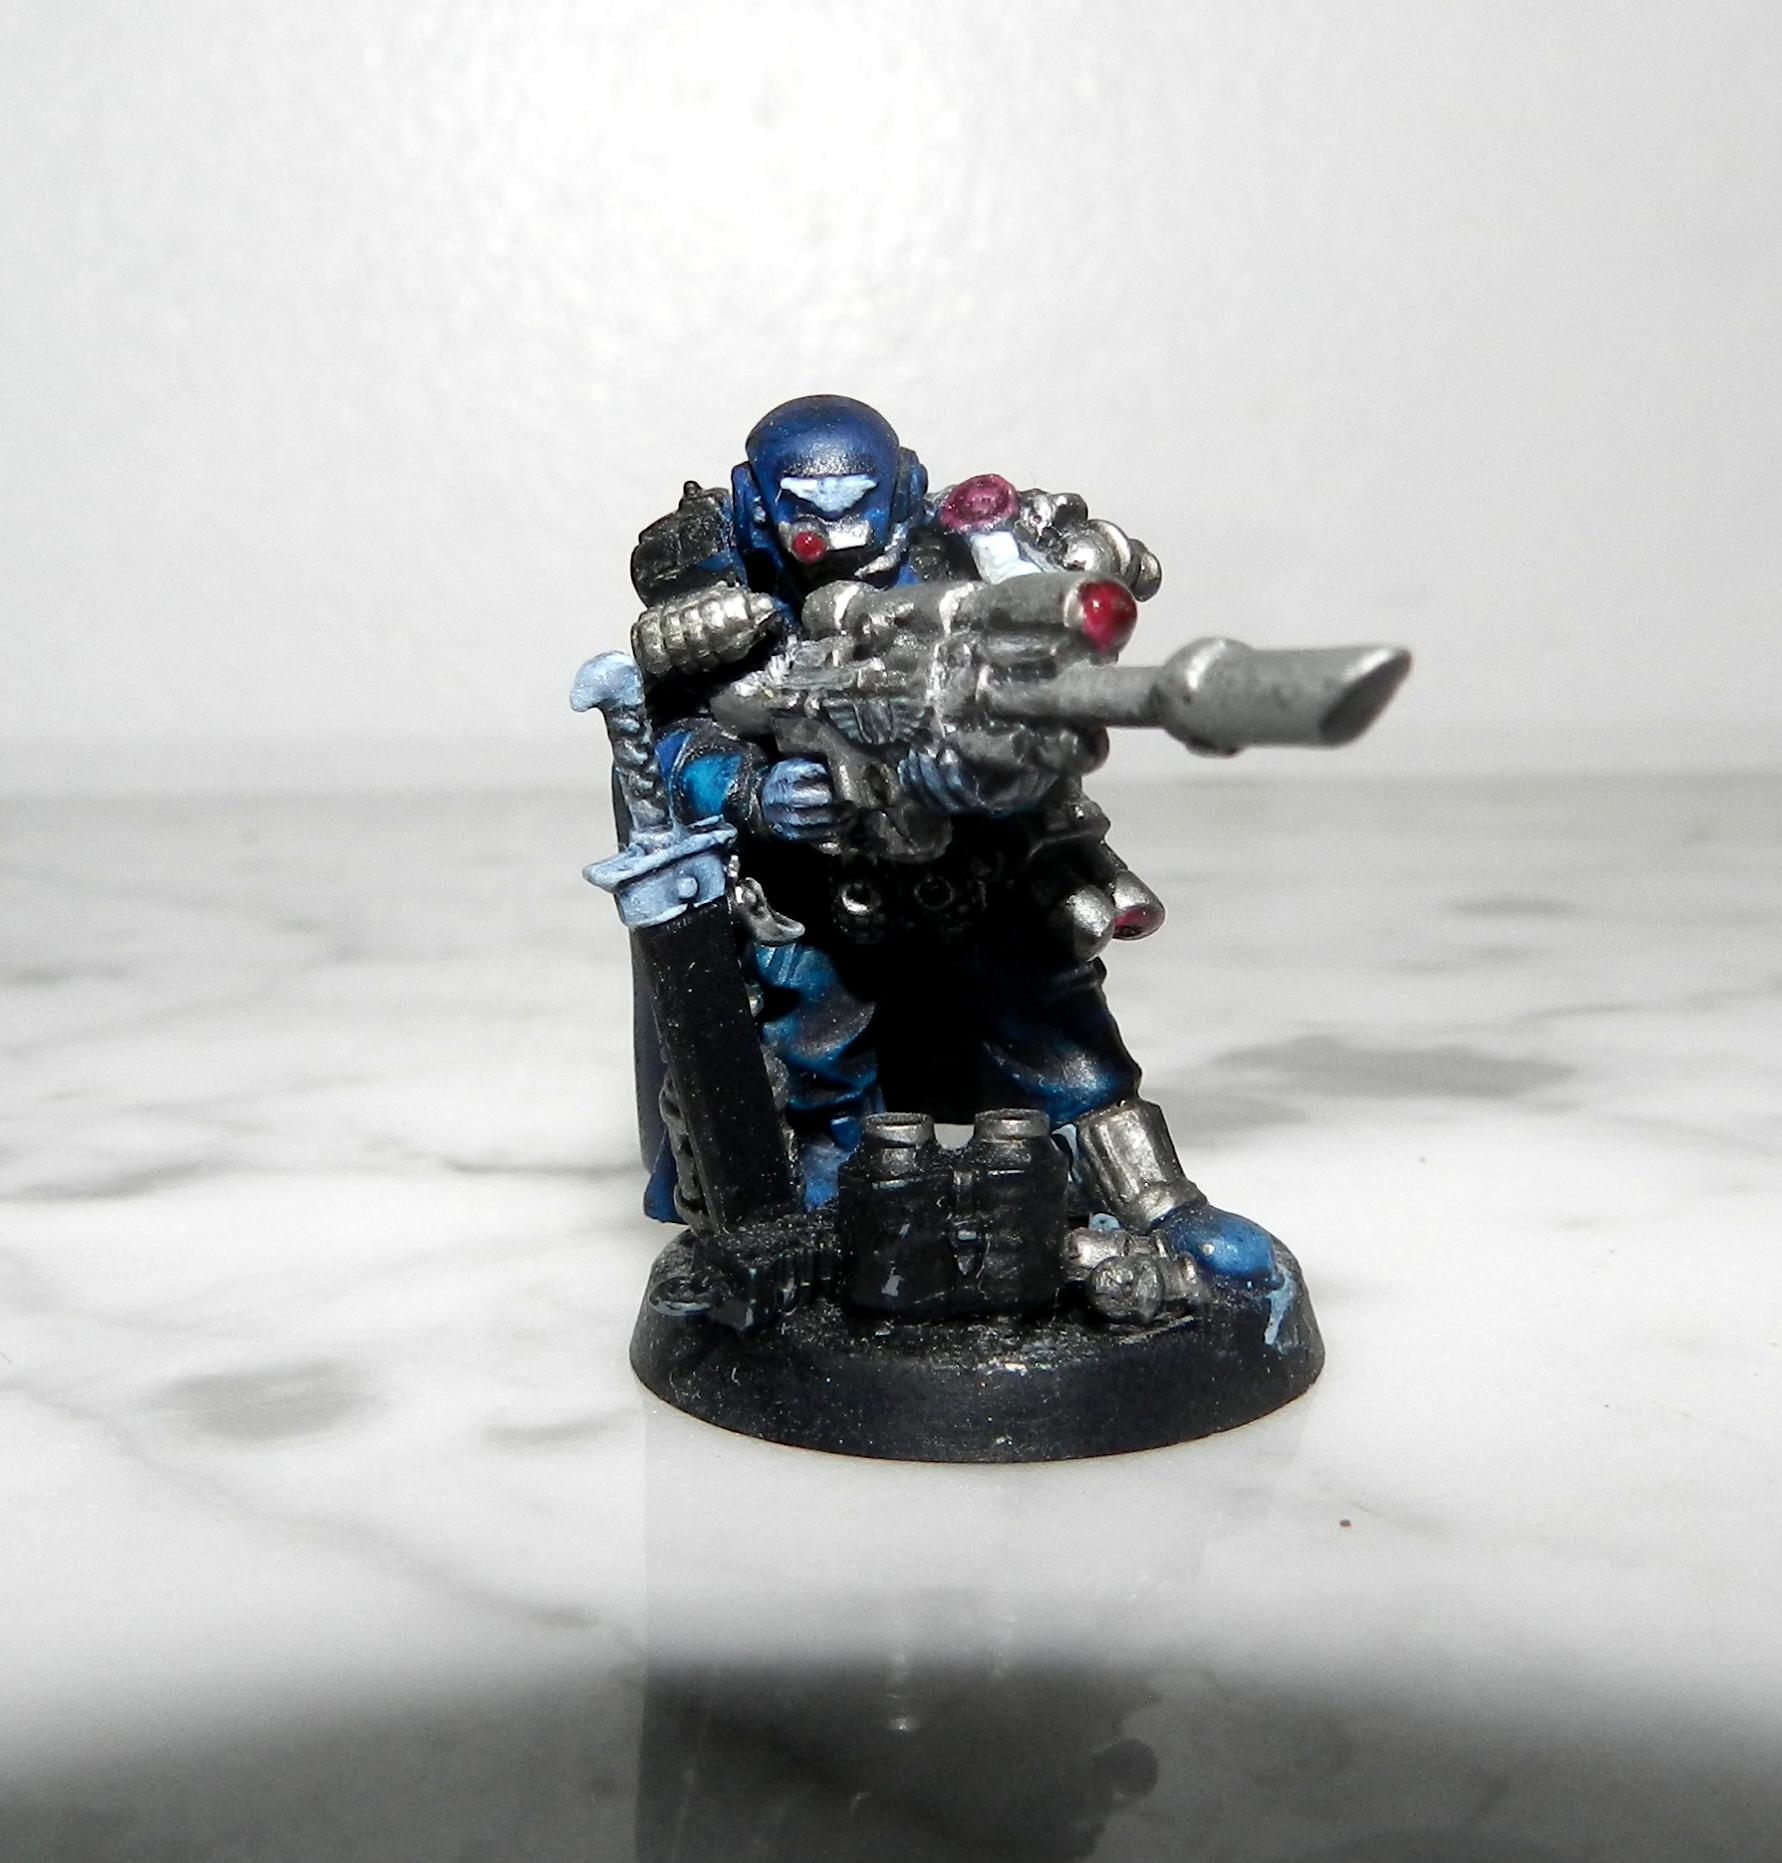 Adeptus Arbites, Cadians, Camouflage, Conversion, Gears Of War, Guardsmen, Imperial Guard, Marbo, Sly Marbo, Snipers, Warhammer 40,000, Work In Progress